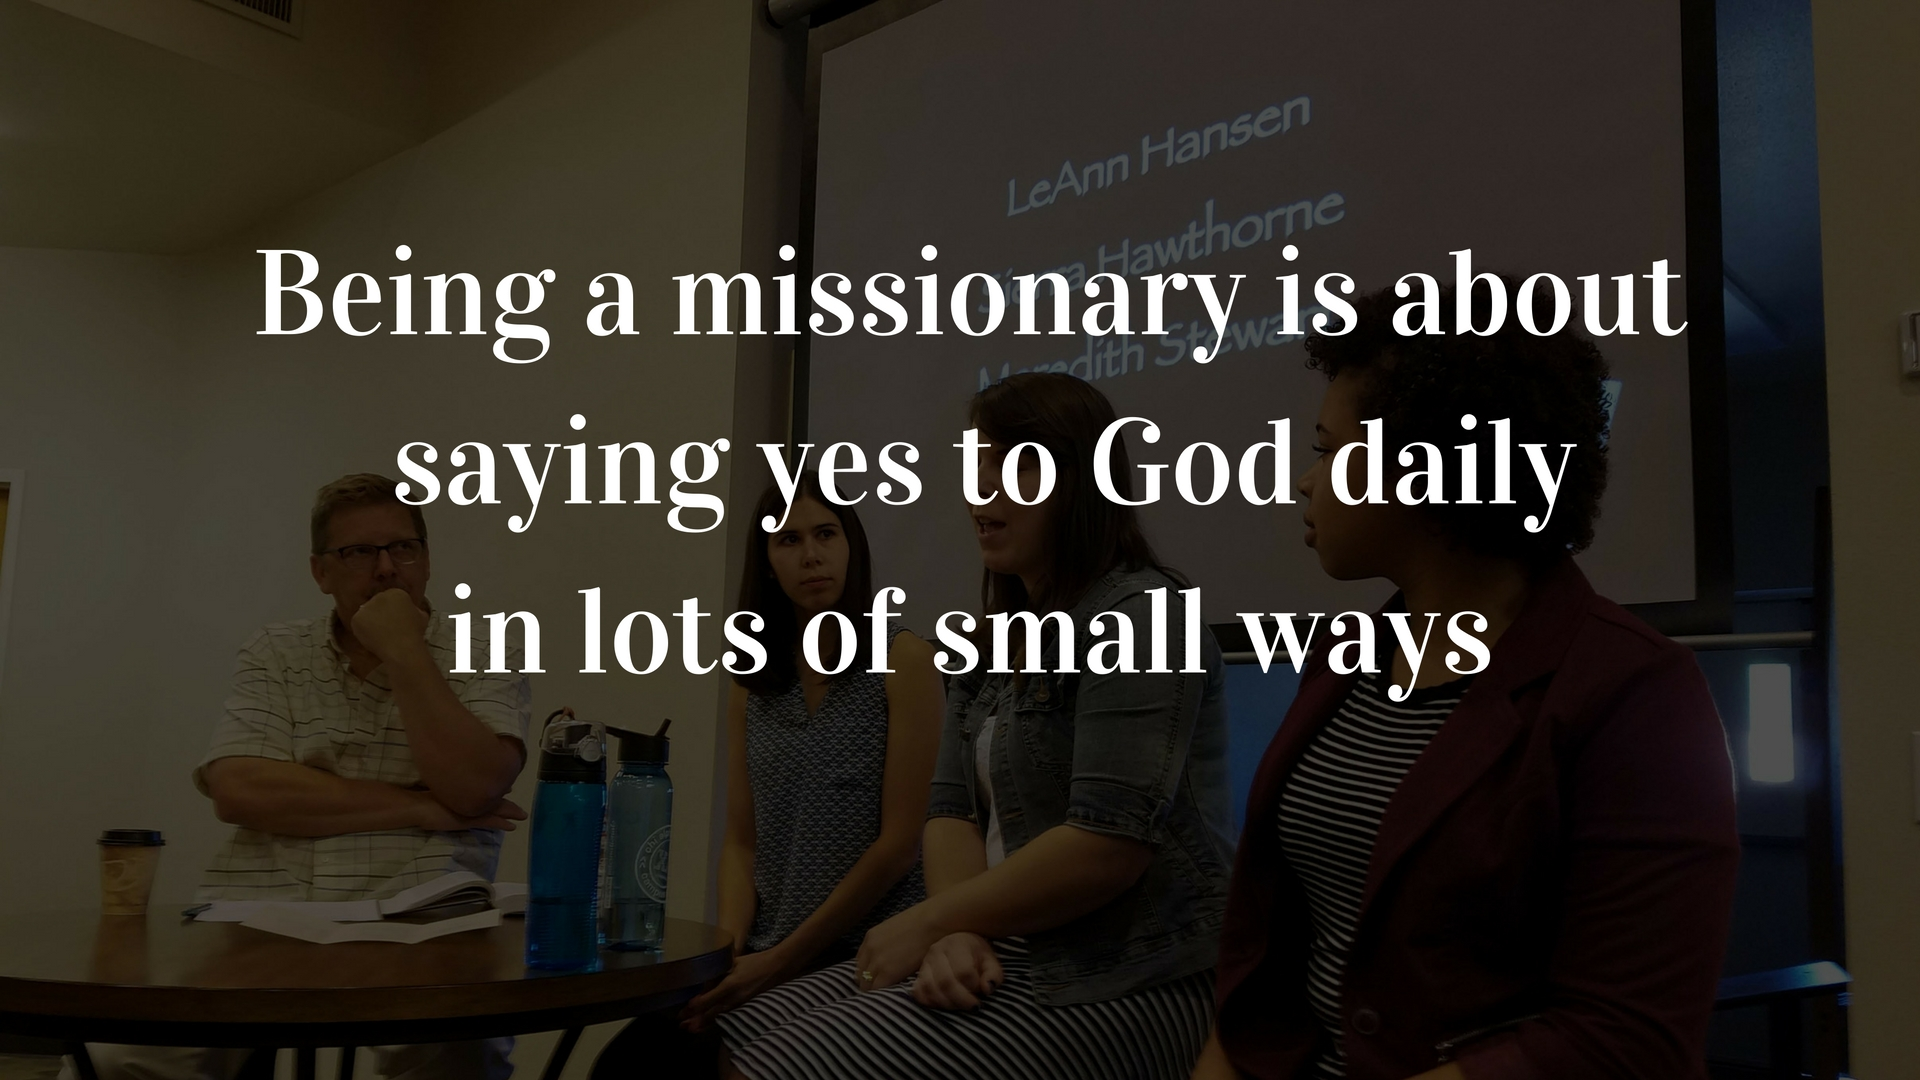 Being a missionary is about saying yes to God dailyin lots of small ways